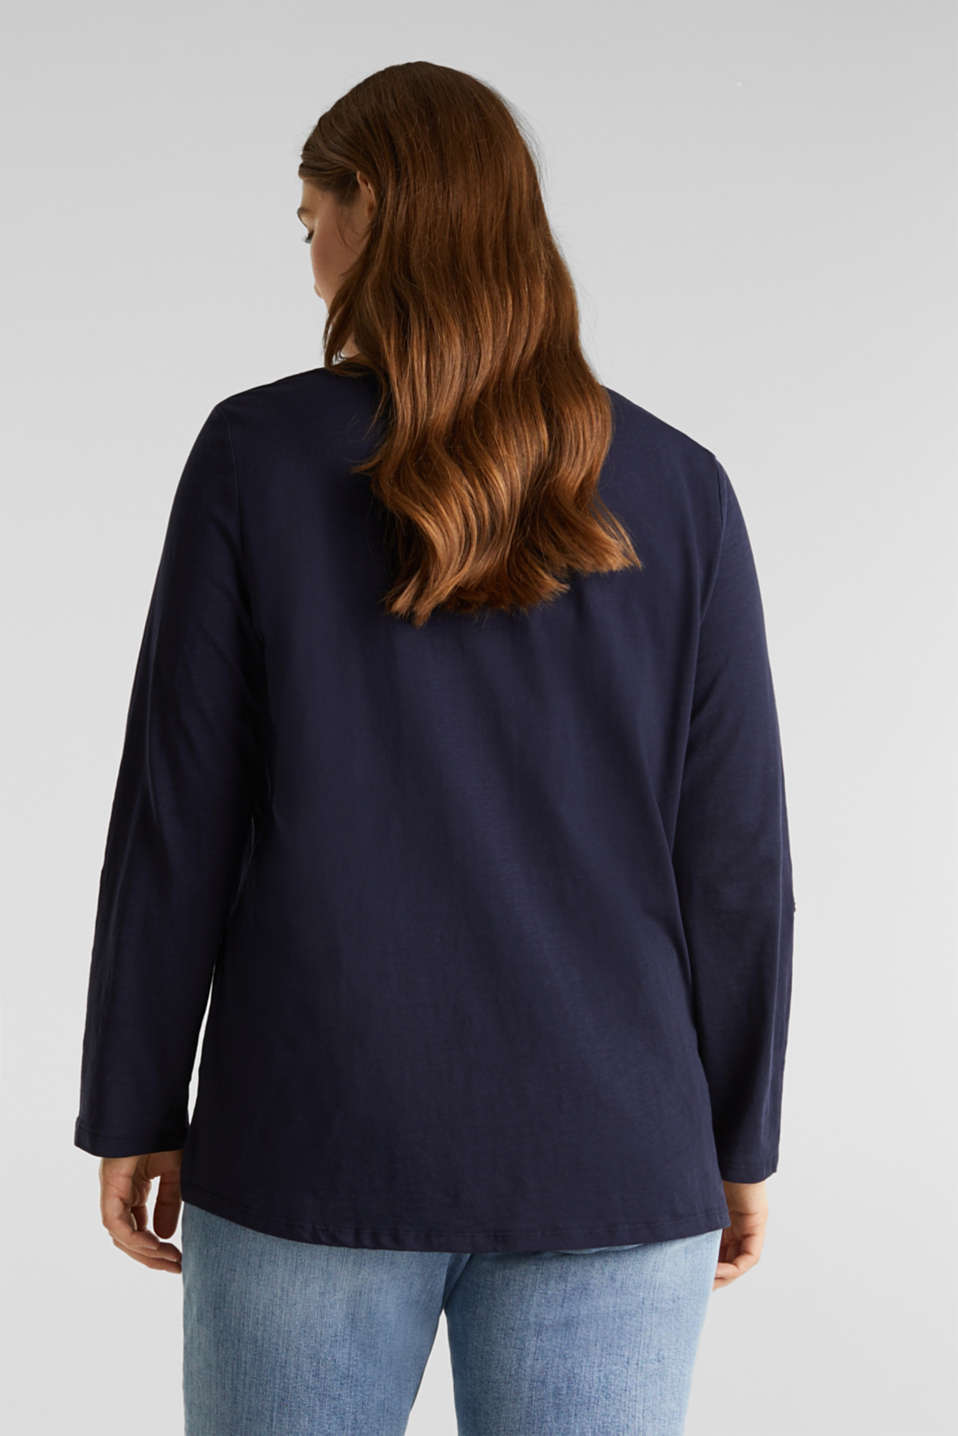 CURVY long sleeve top, organic cotton, NAVY, detail image number 3